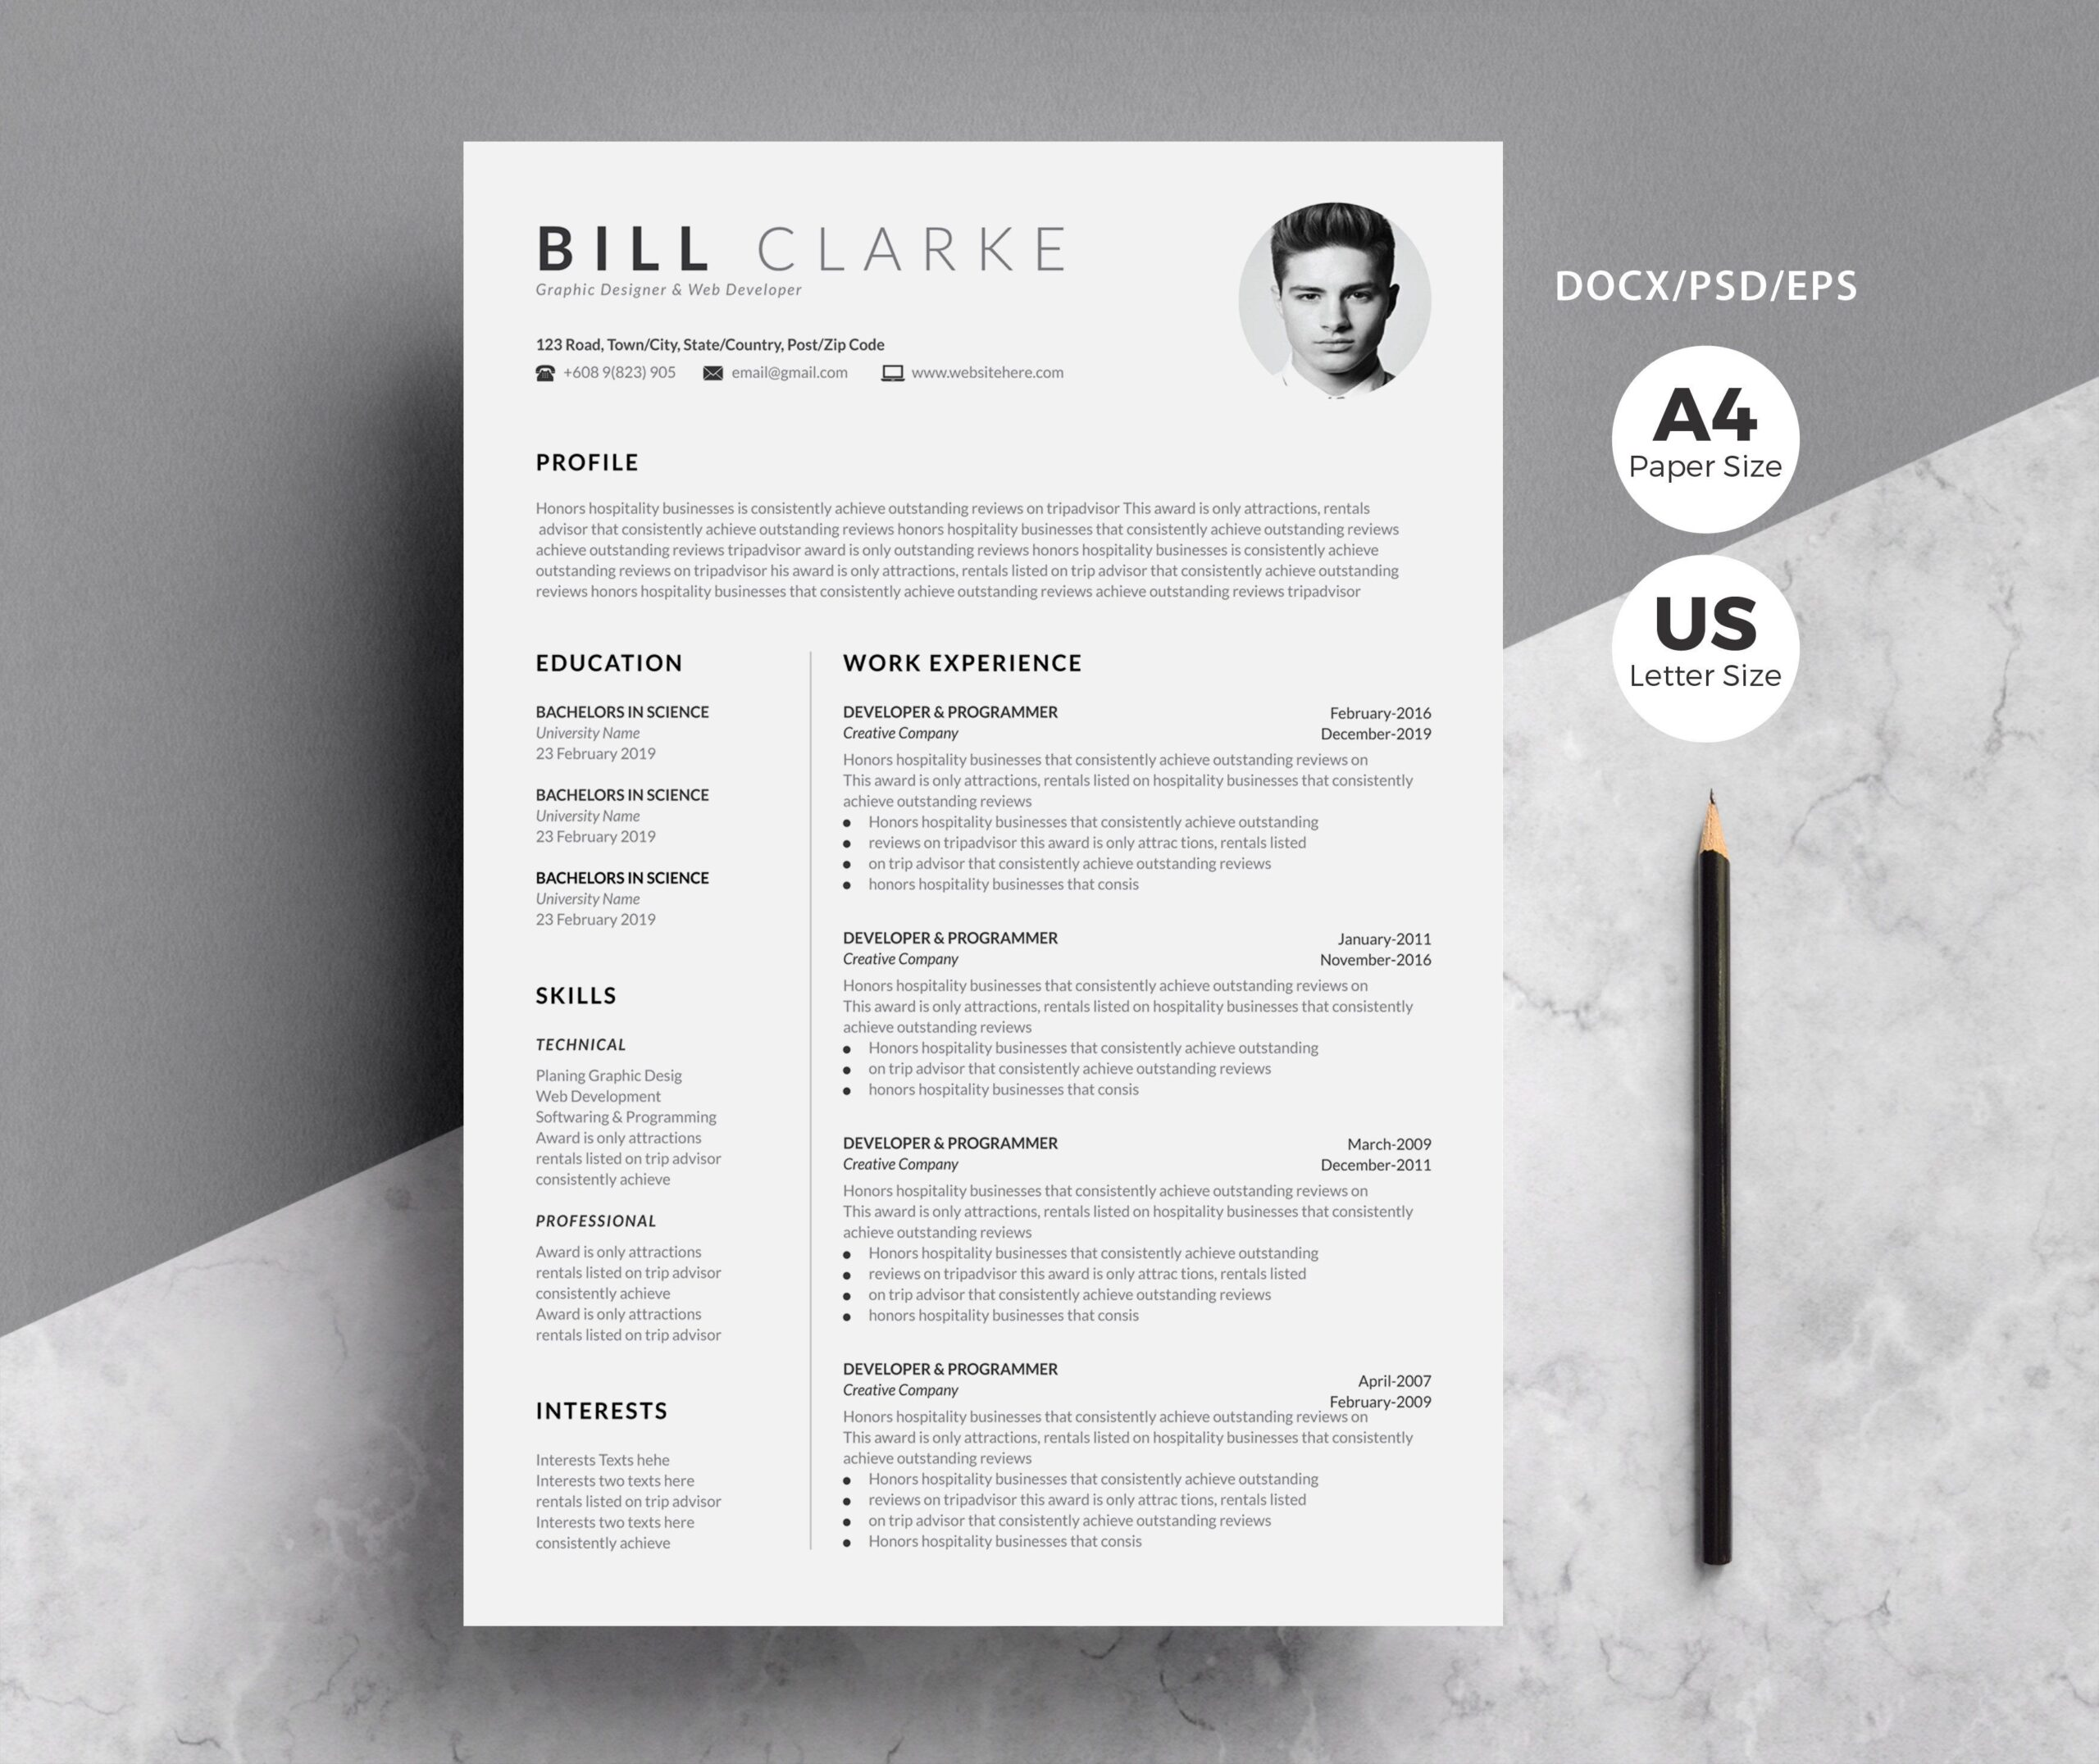 word resume cover letter for creative templates template paper size and application basic Resume Paper Size For Resume And Application Letter